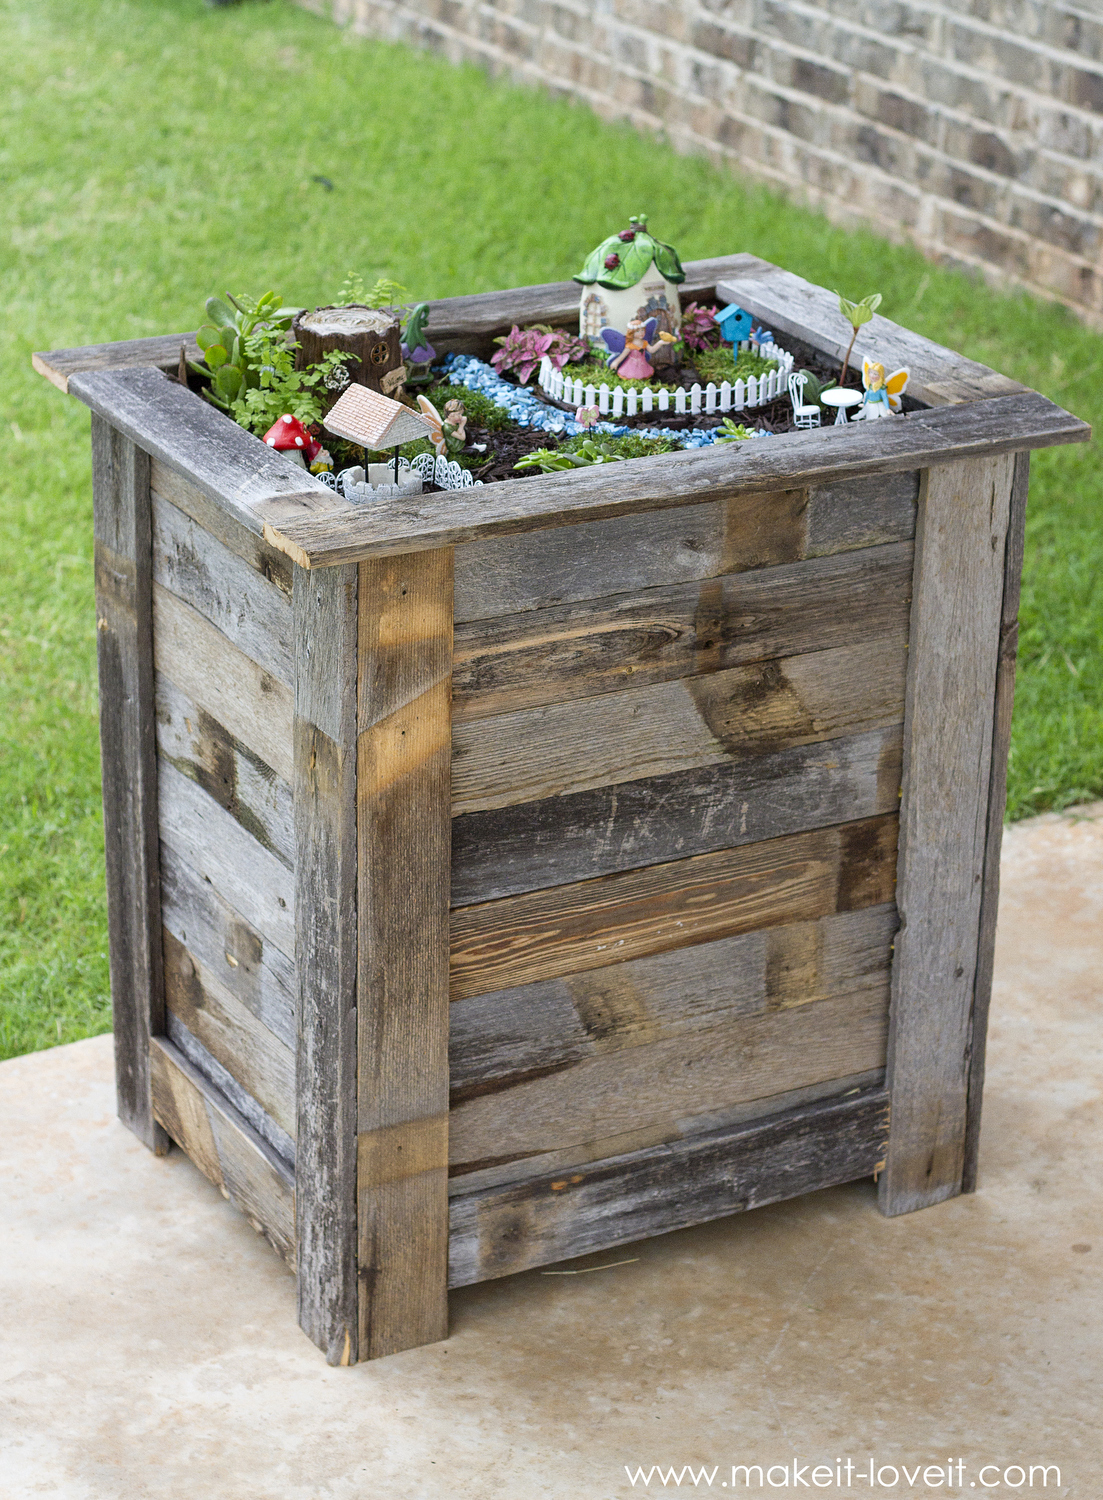 DIY Reclaimed Wood Planter Box for an upright Fairy Garden | www.makeit-loveit.com